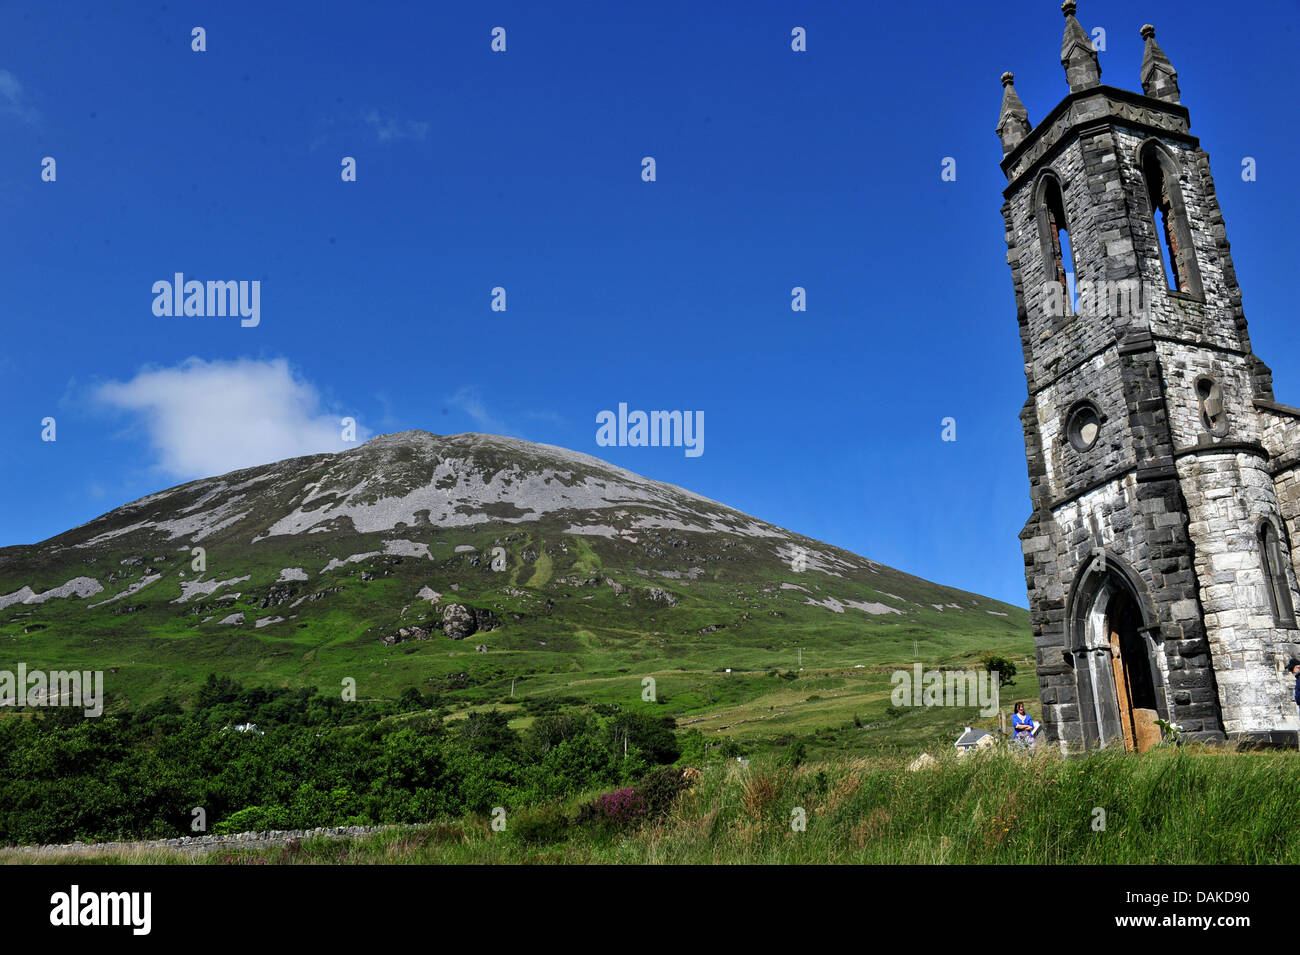 Dunlewey Church of Ireland and Mount Errigal, County Donegal, Ireland - Stock Image